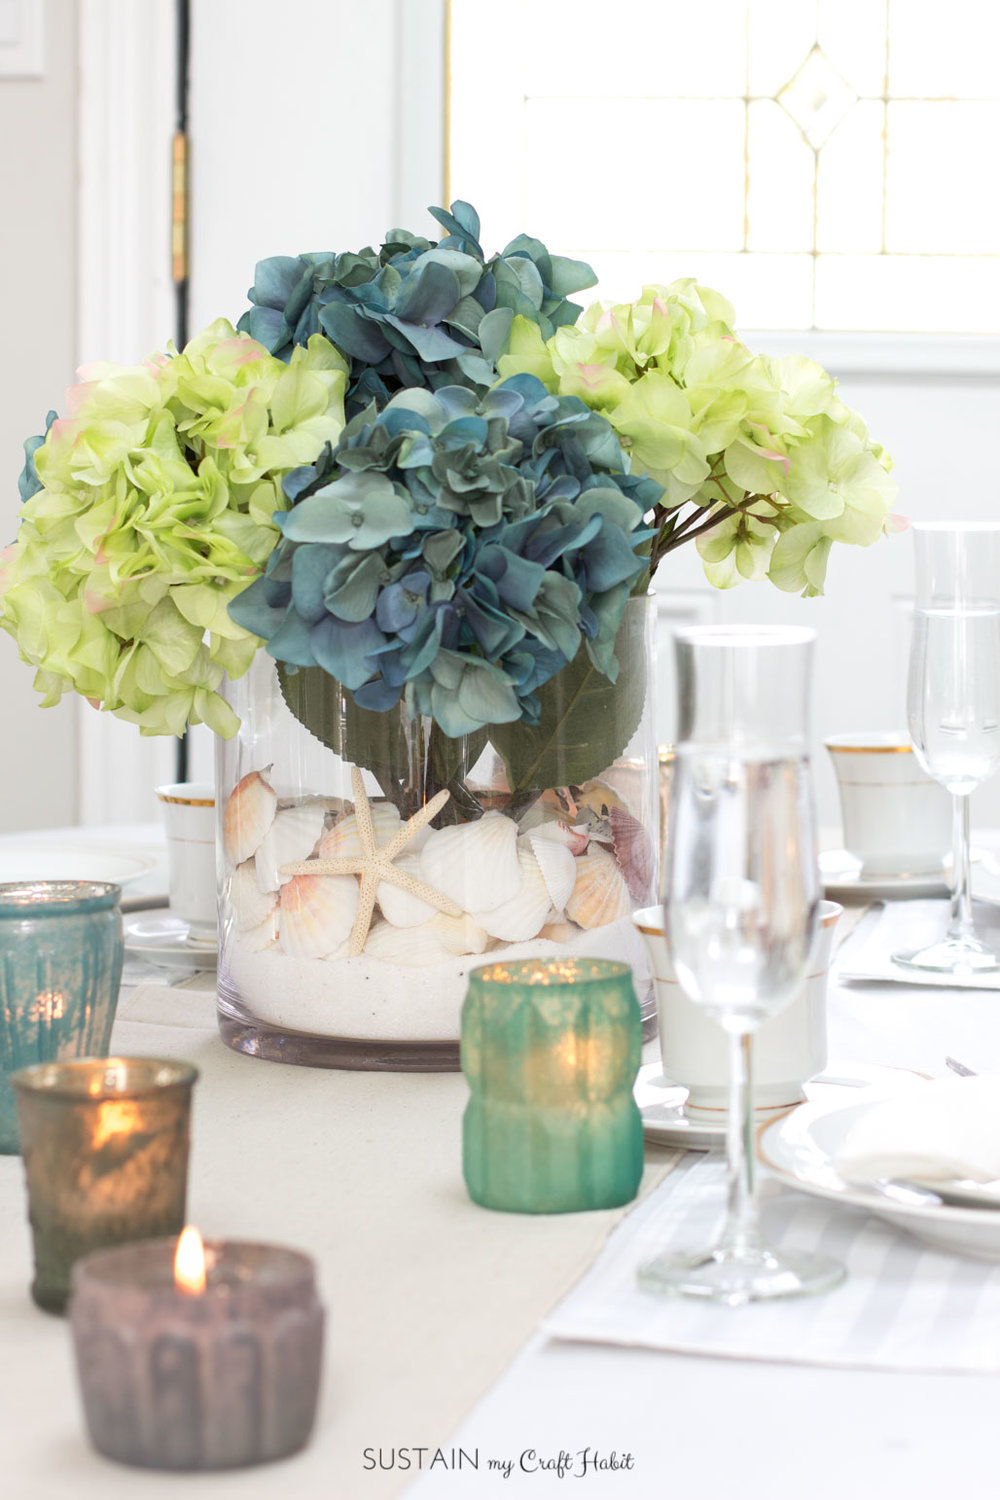 Learn how to make this simple beach theme centerpiece with sand, sea shells and hydrangeas. Video tutorial included!